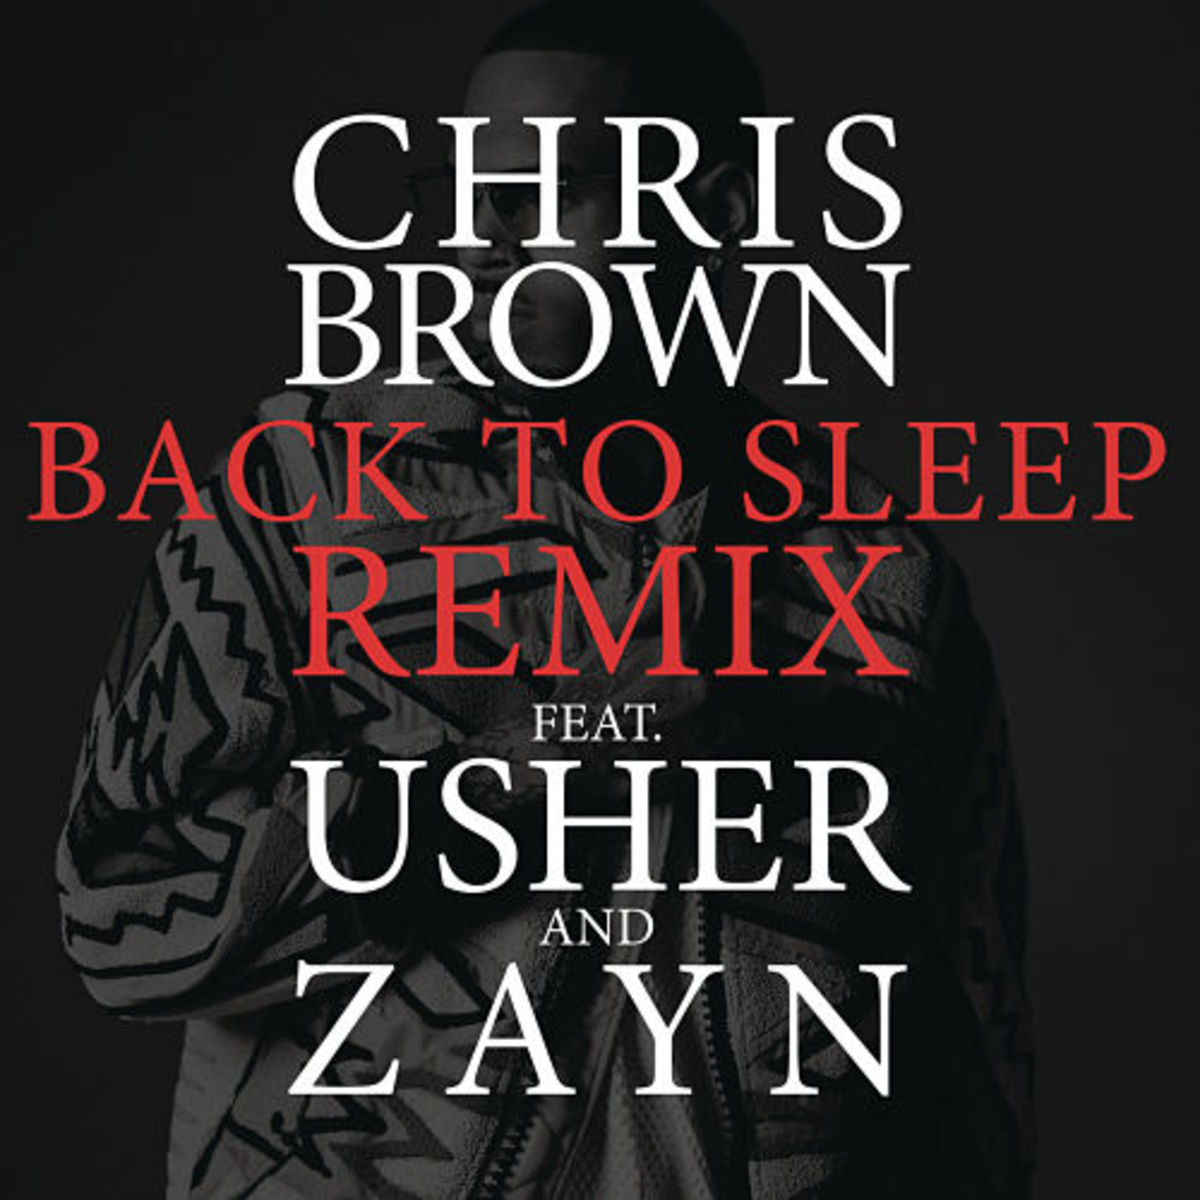 chris-brown-back-to-sleep-remix-1.jpg